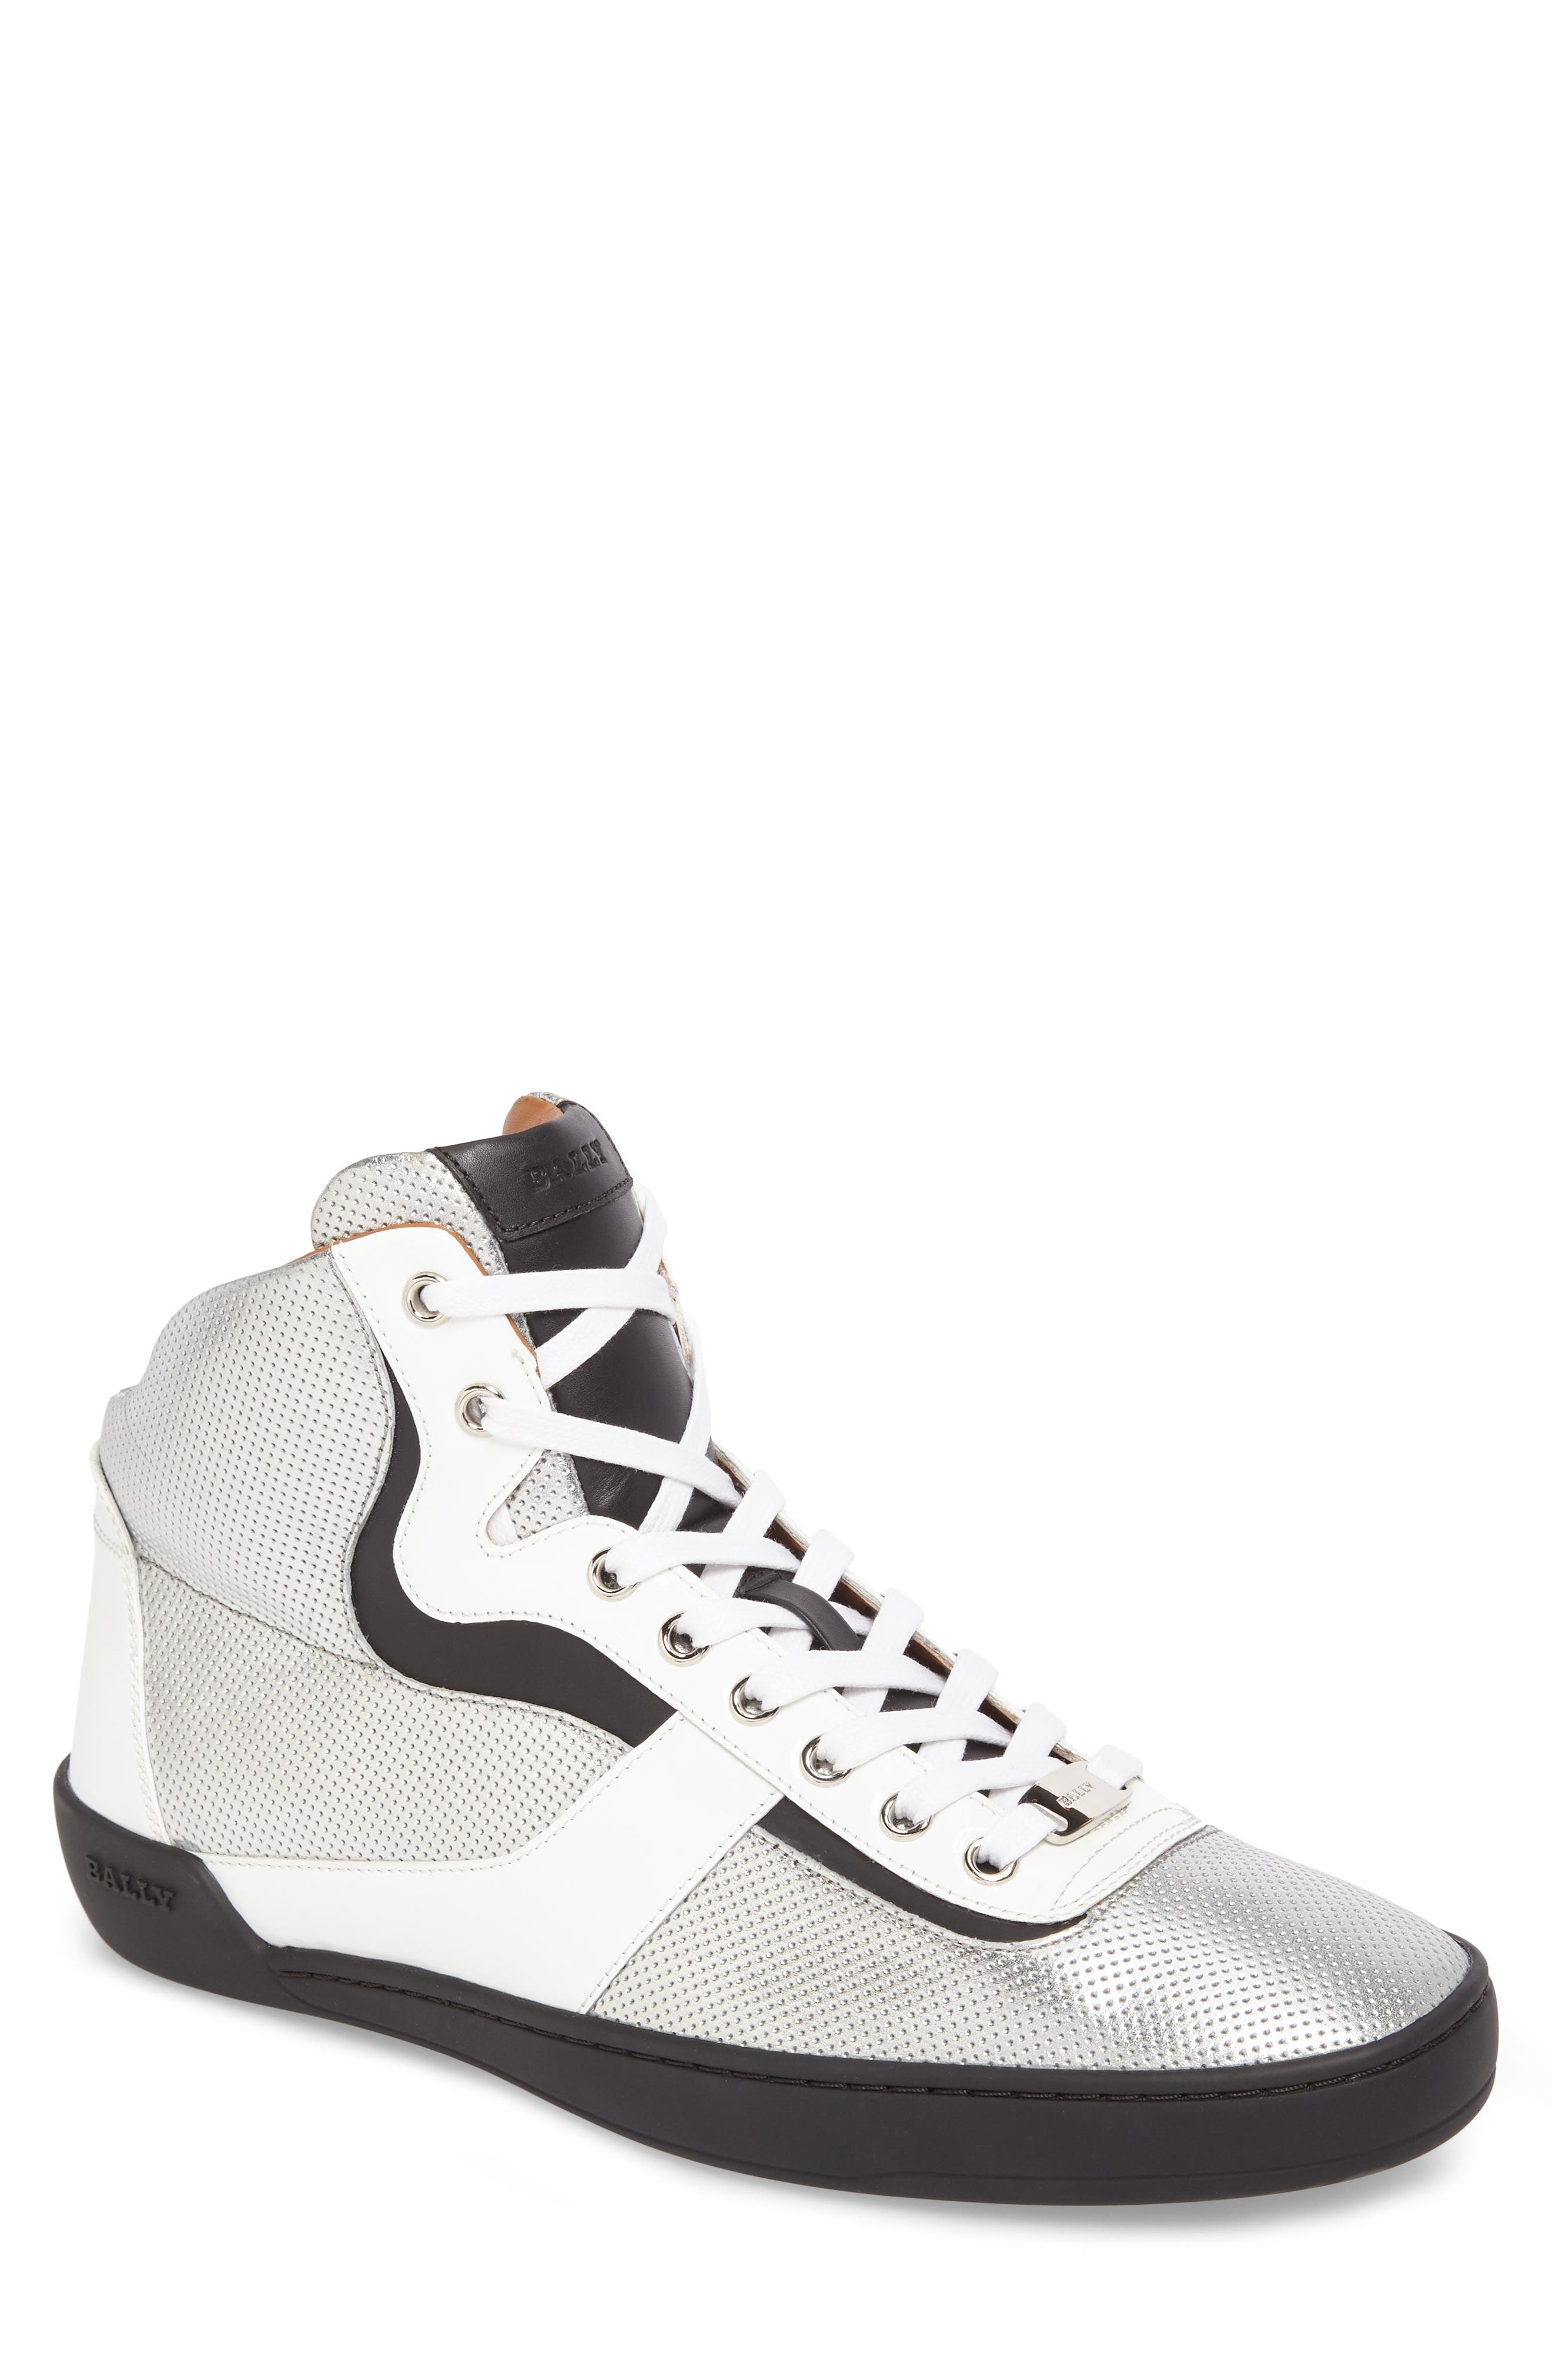 Eroy High Top Sneaker,                             Main thumbnail 1, color,                             Silver